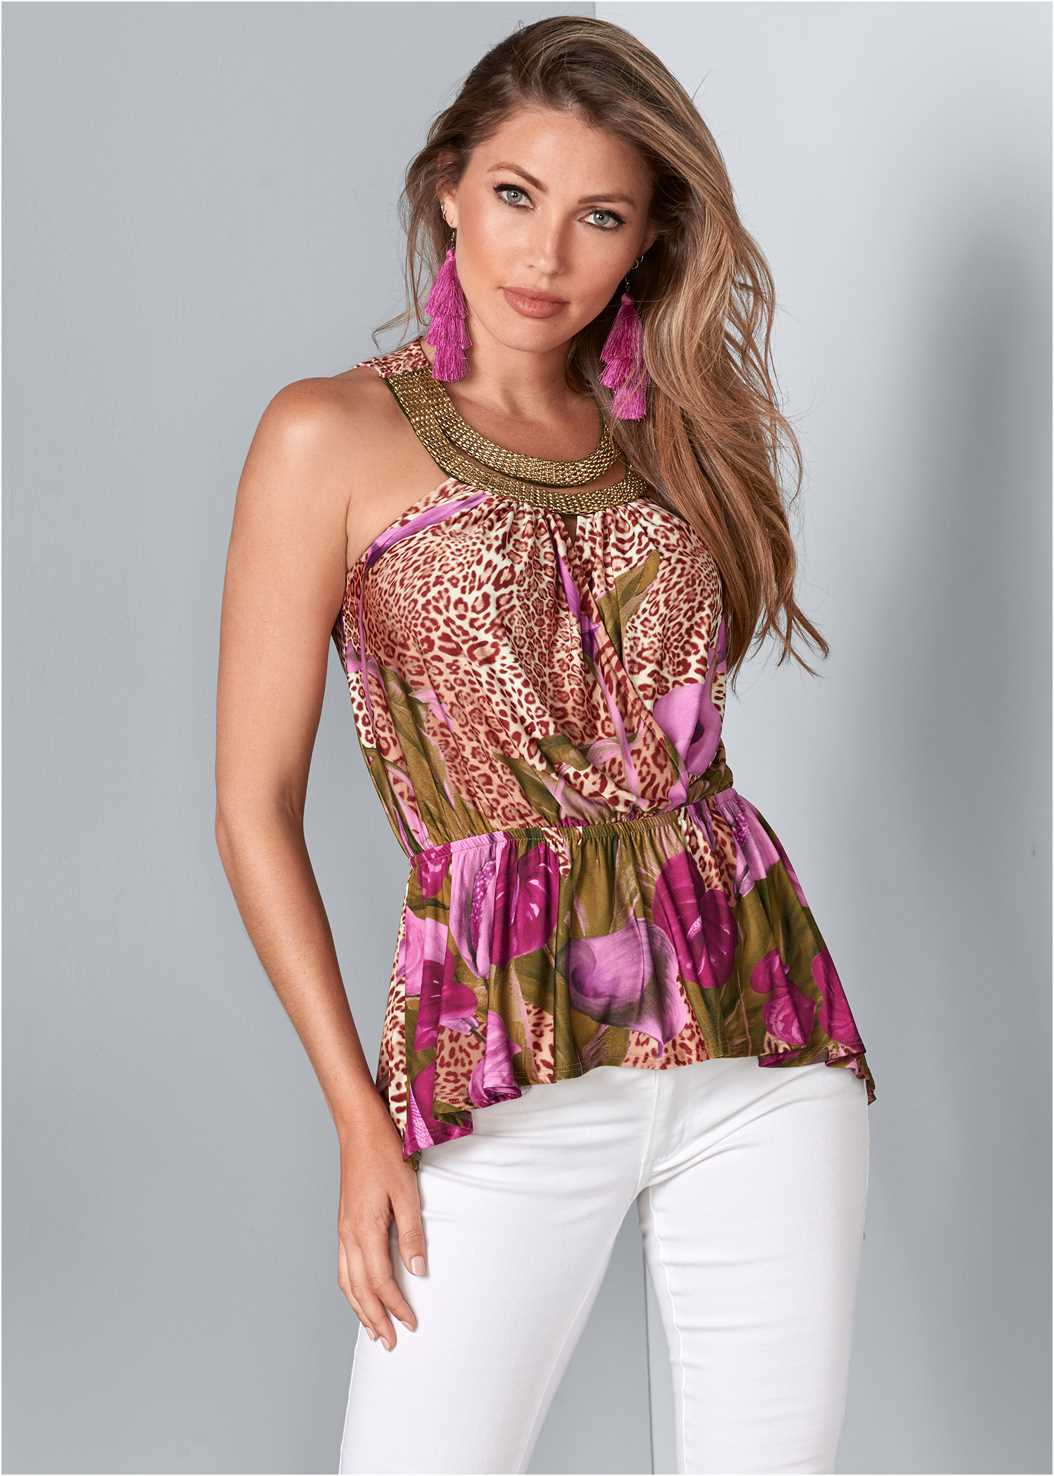 Surplice Print Top,Mid Rise Color Skinny Jeans